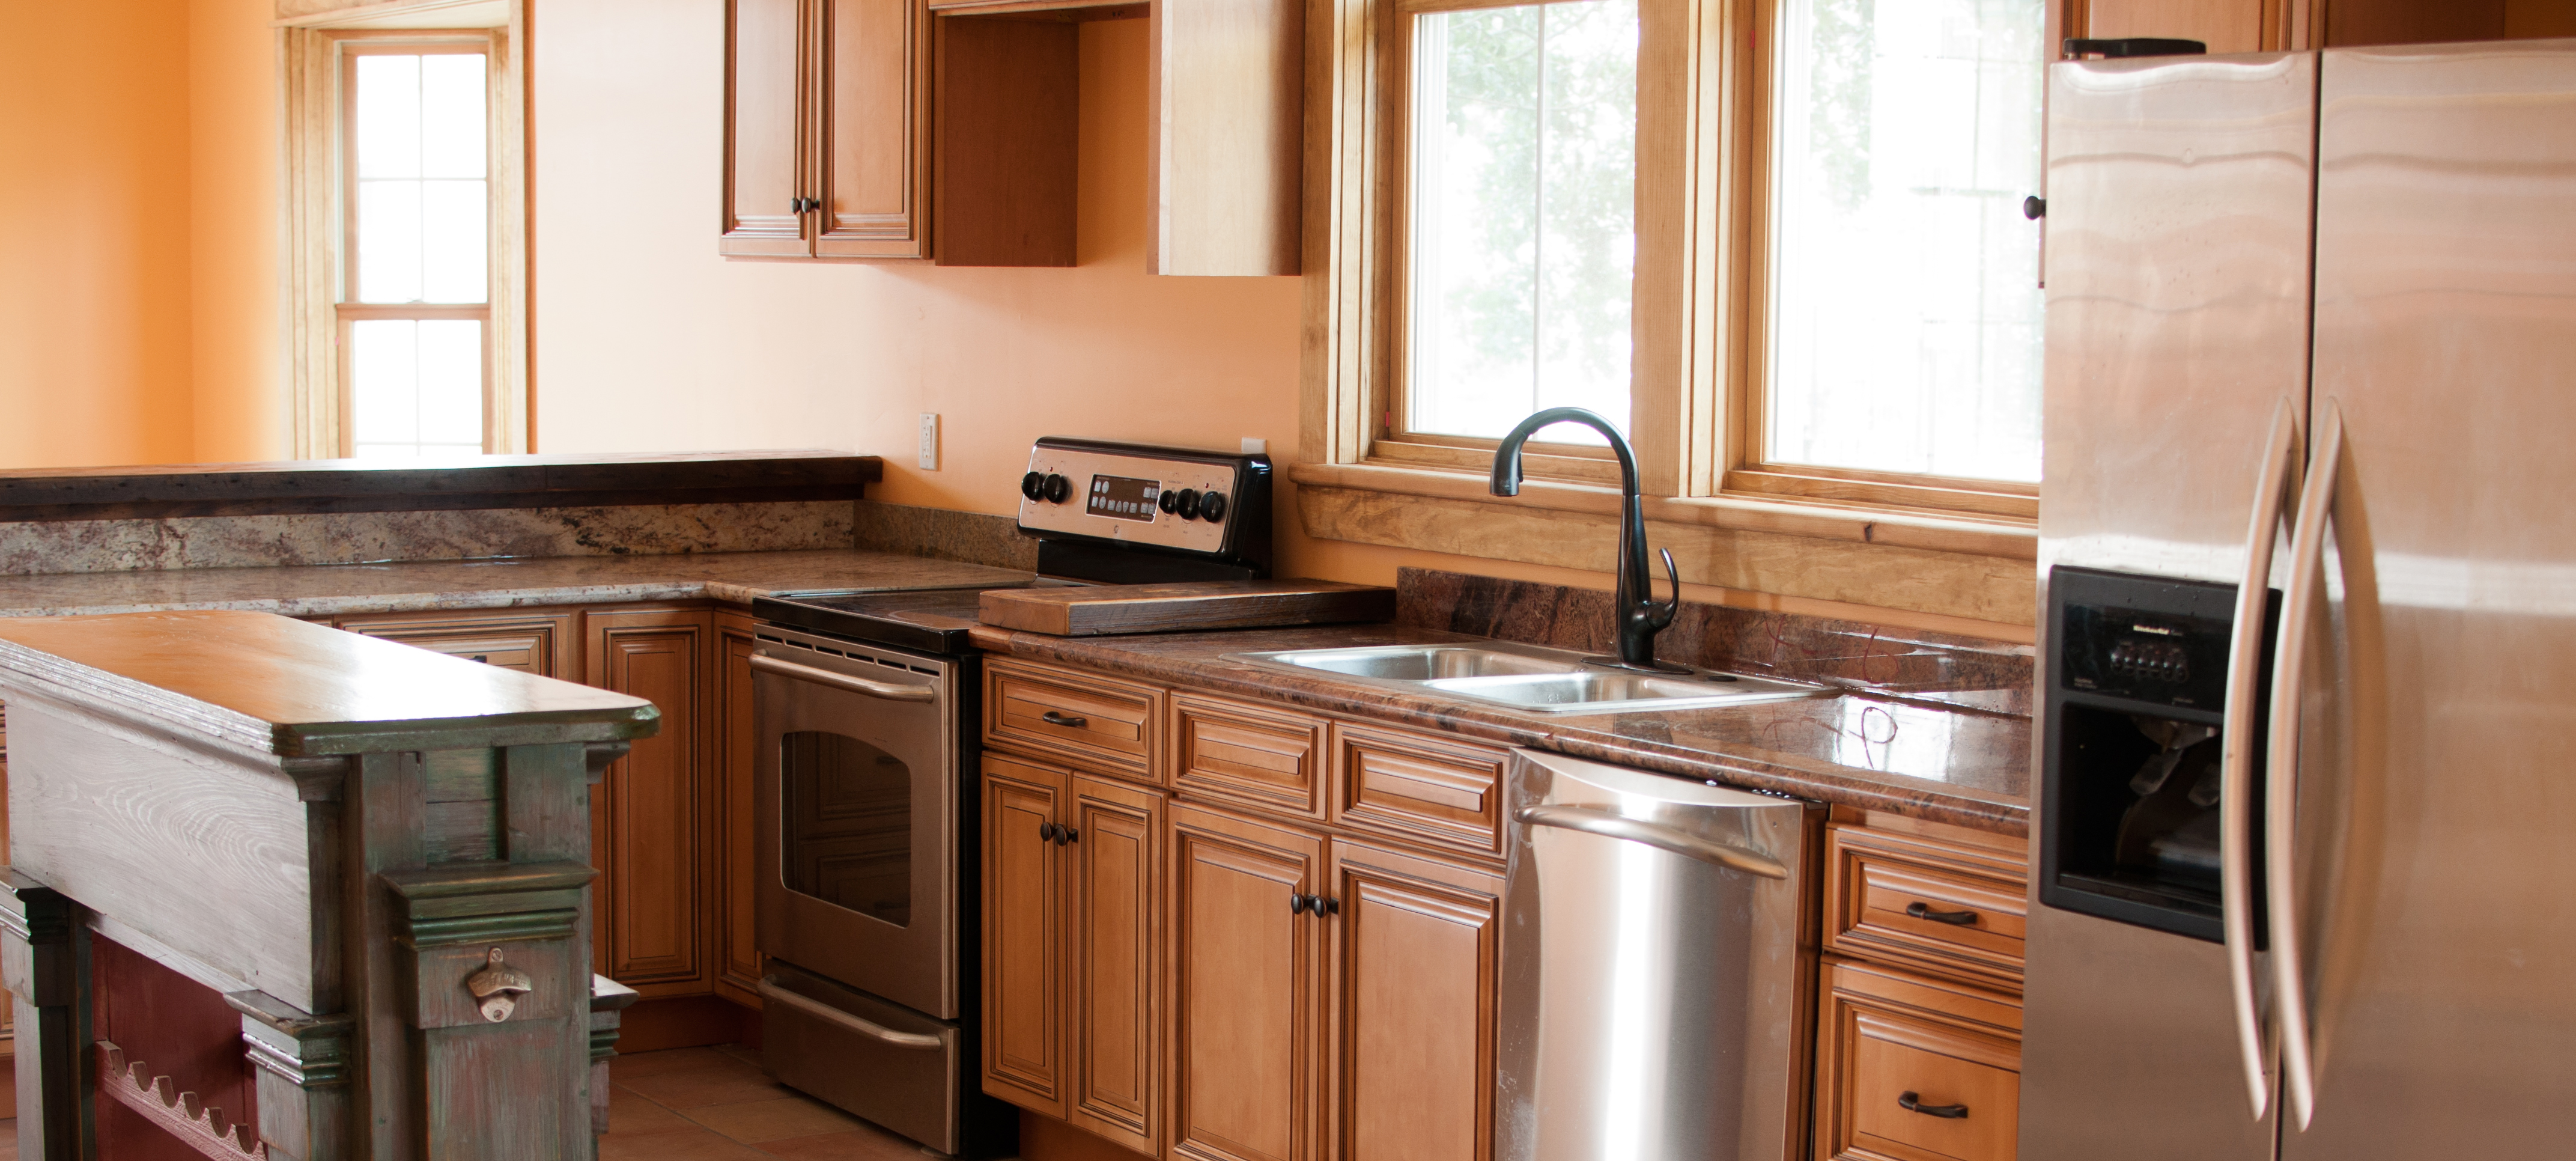 High quality Appliances and Countertops